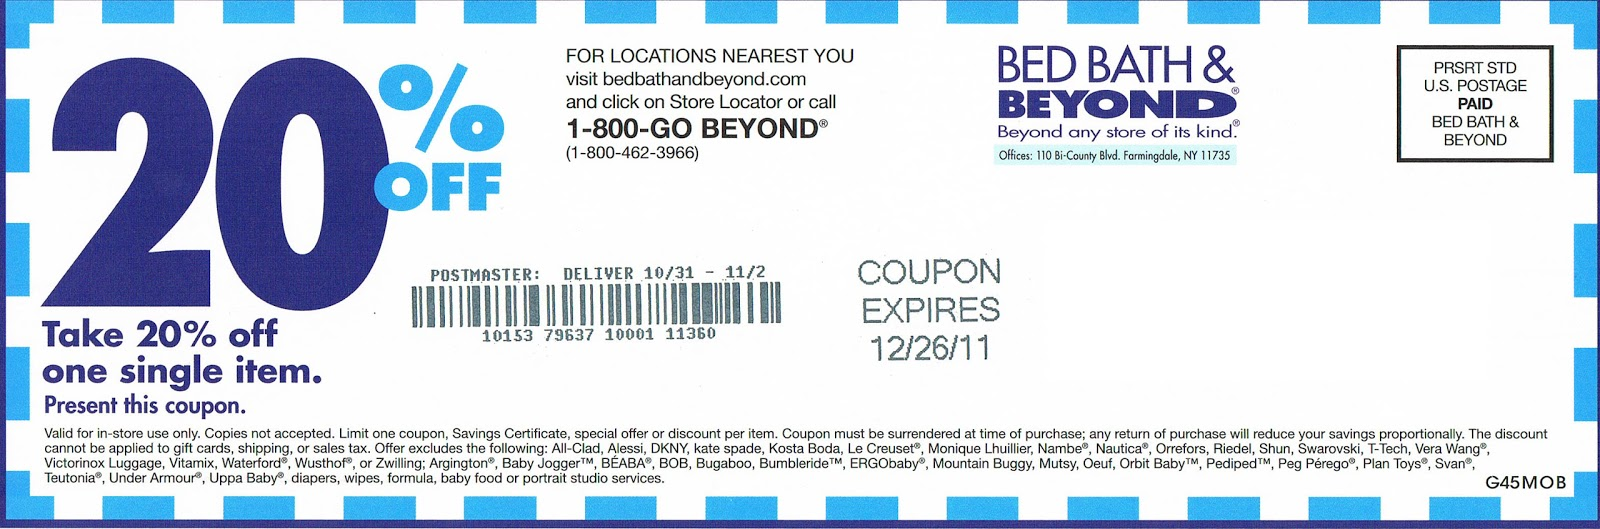 bed bath and beyond 20 off coupon 20 at bed bath and beyond 13554